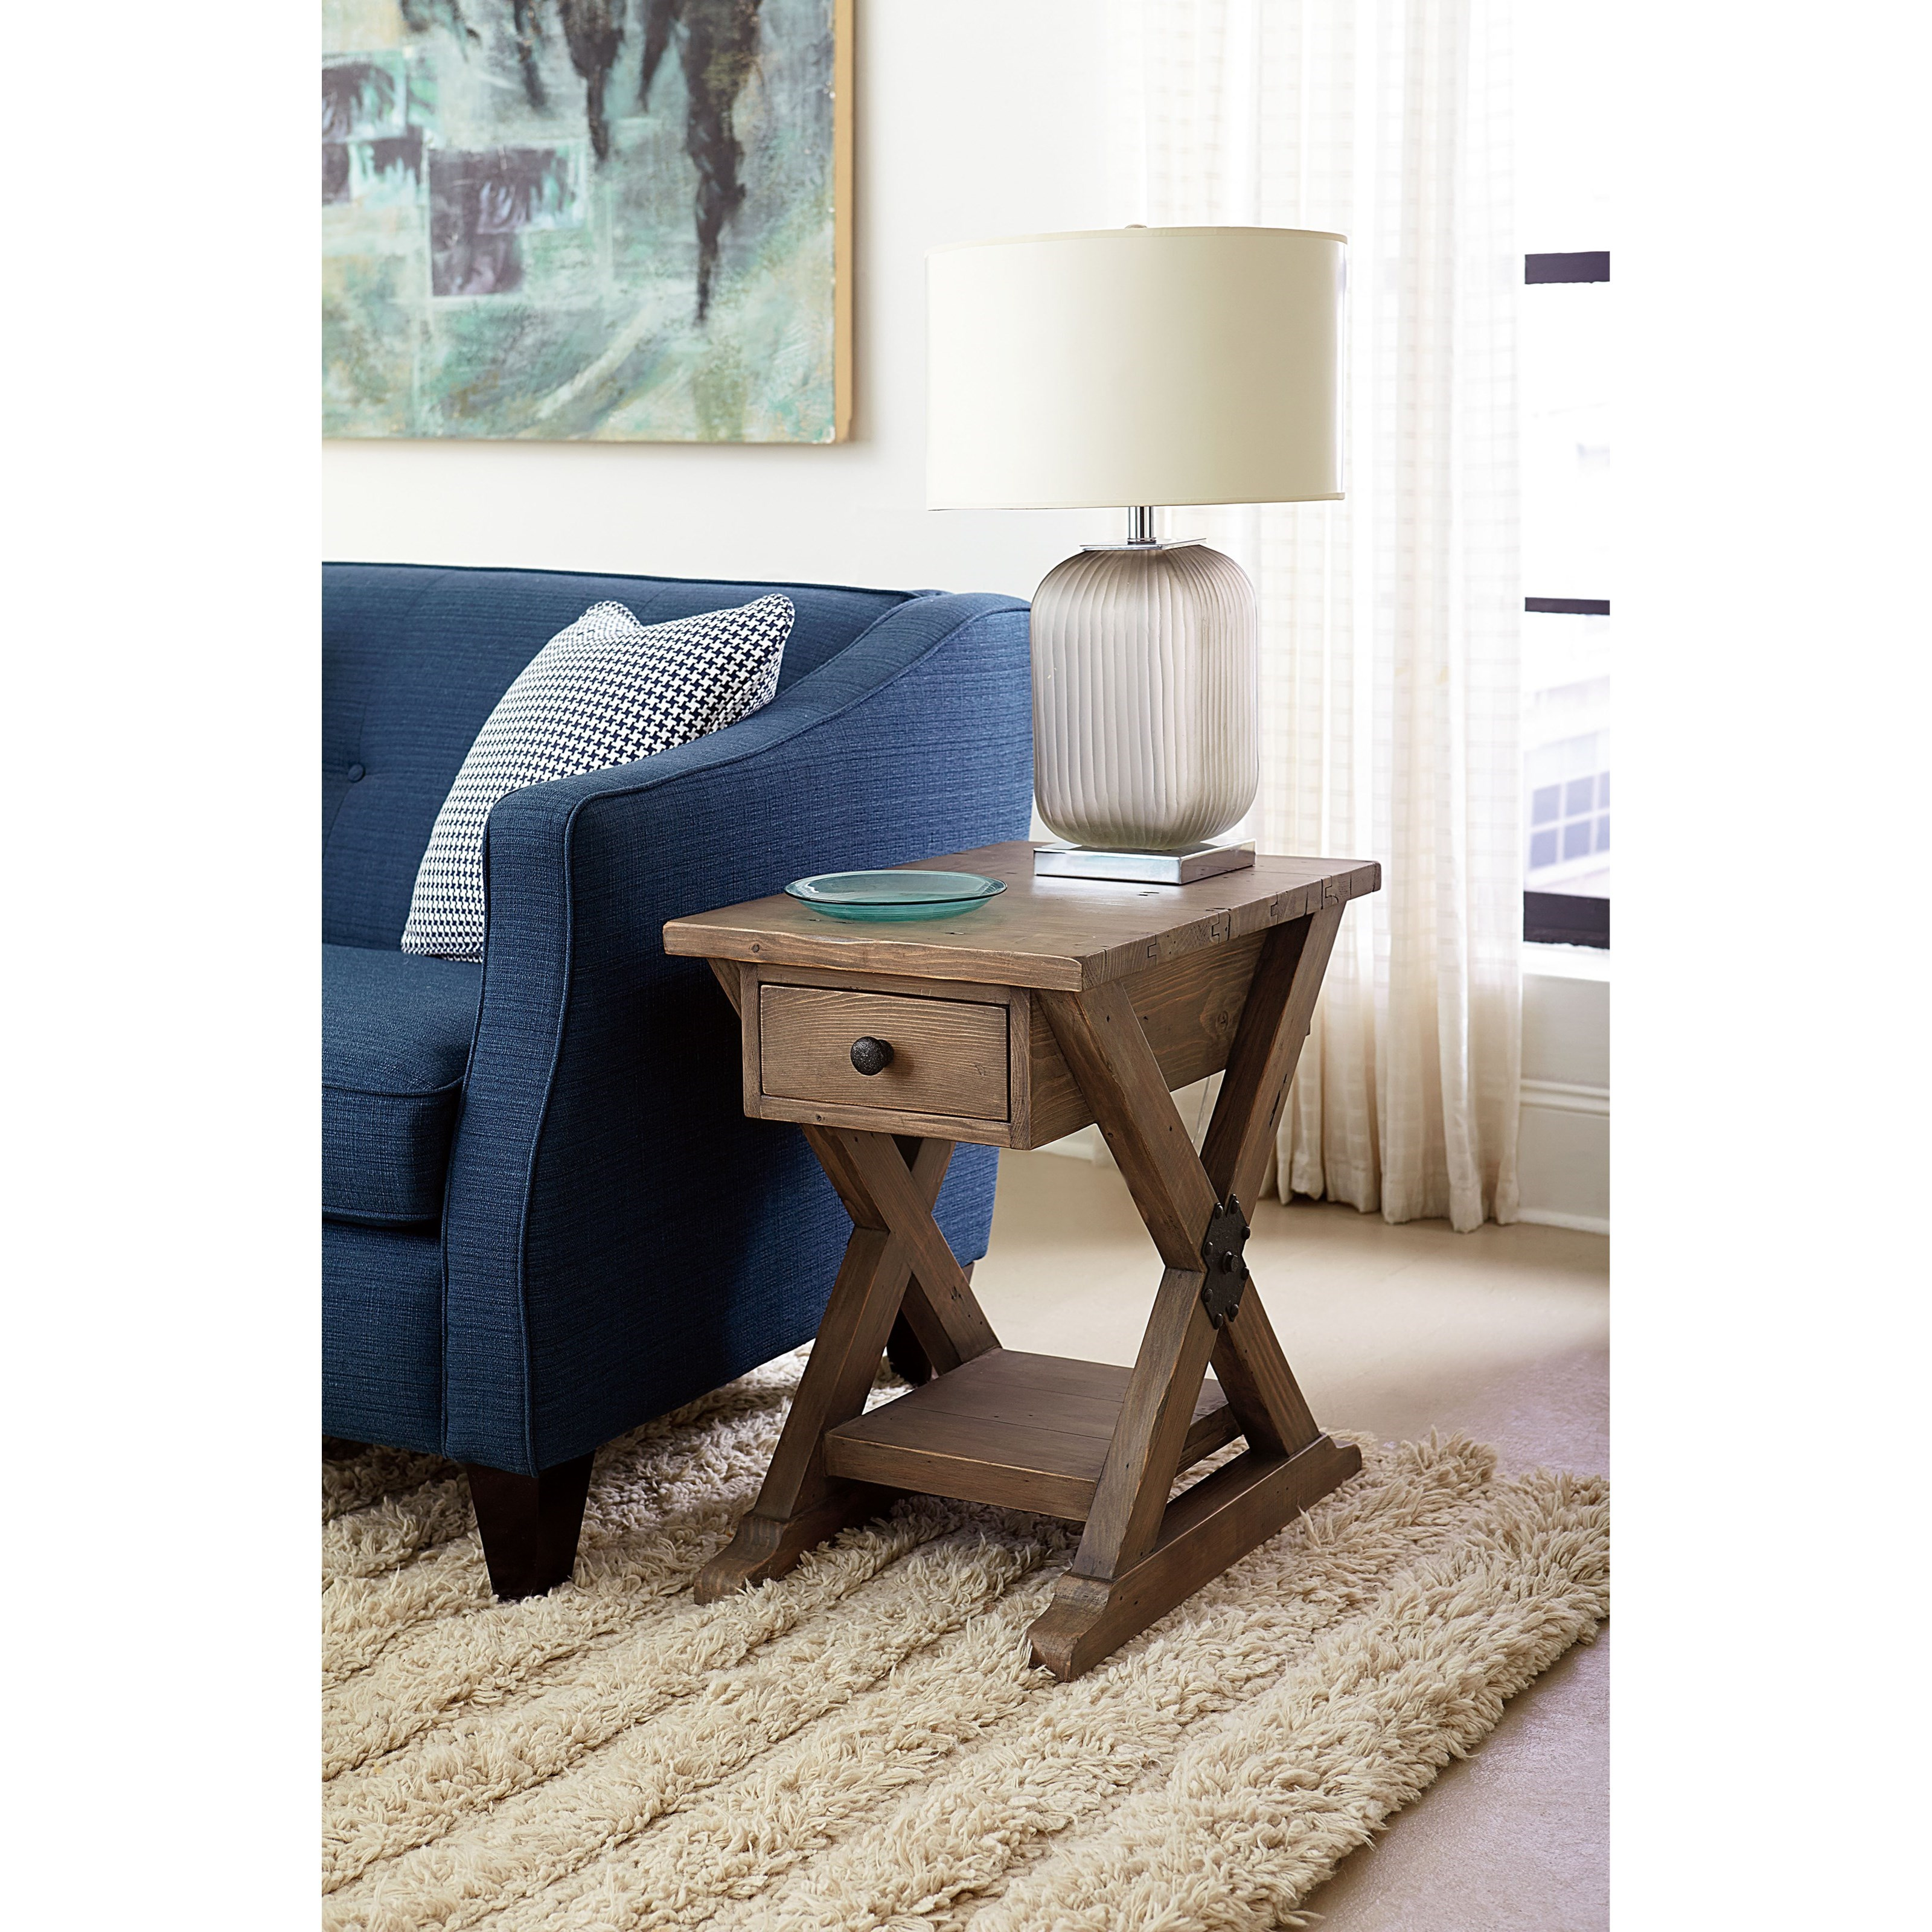 Hammary Reclamation Place 523 916 Farmhouse Chairside